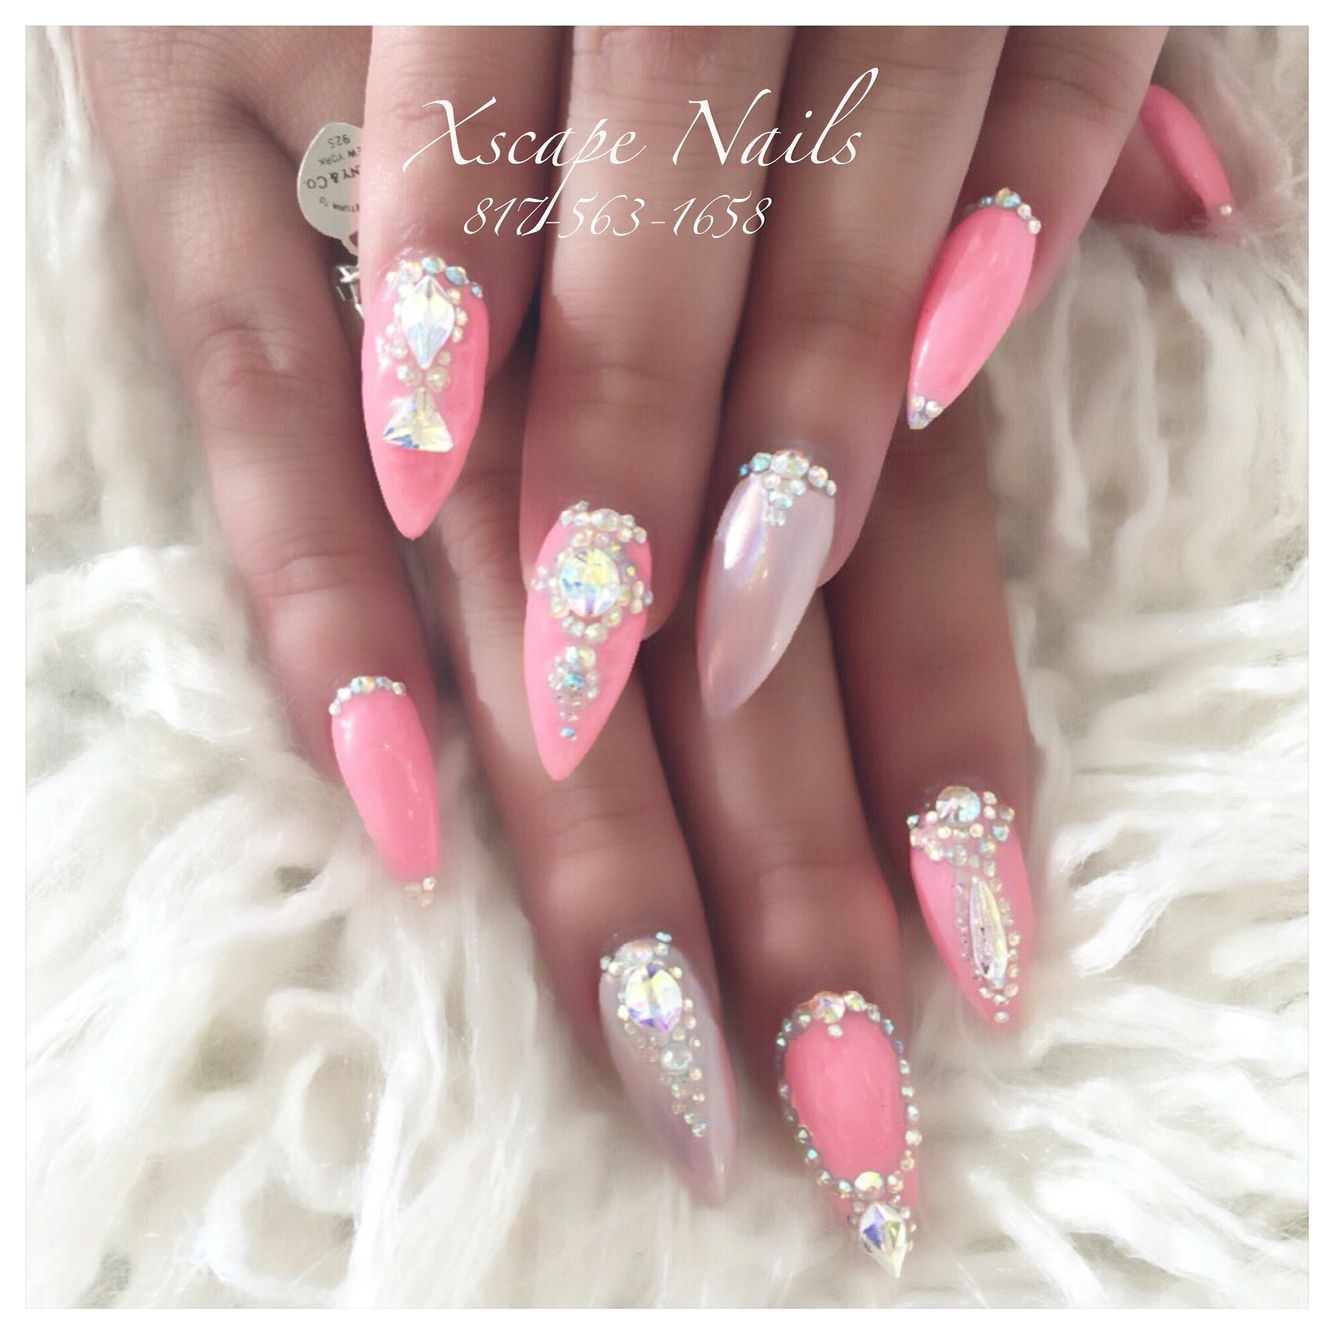 Blue glitter ombr 233 stiletto nails - Pink Chrome Lace Nails